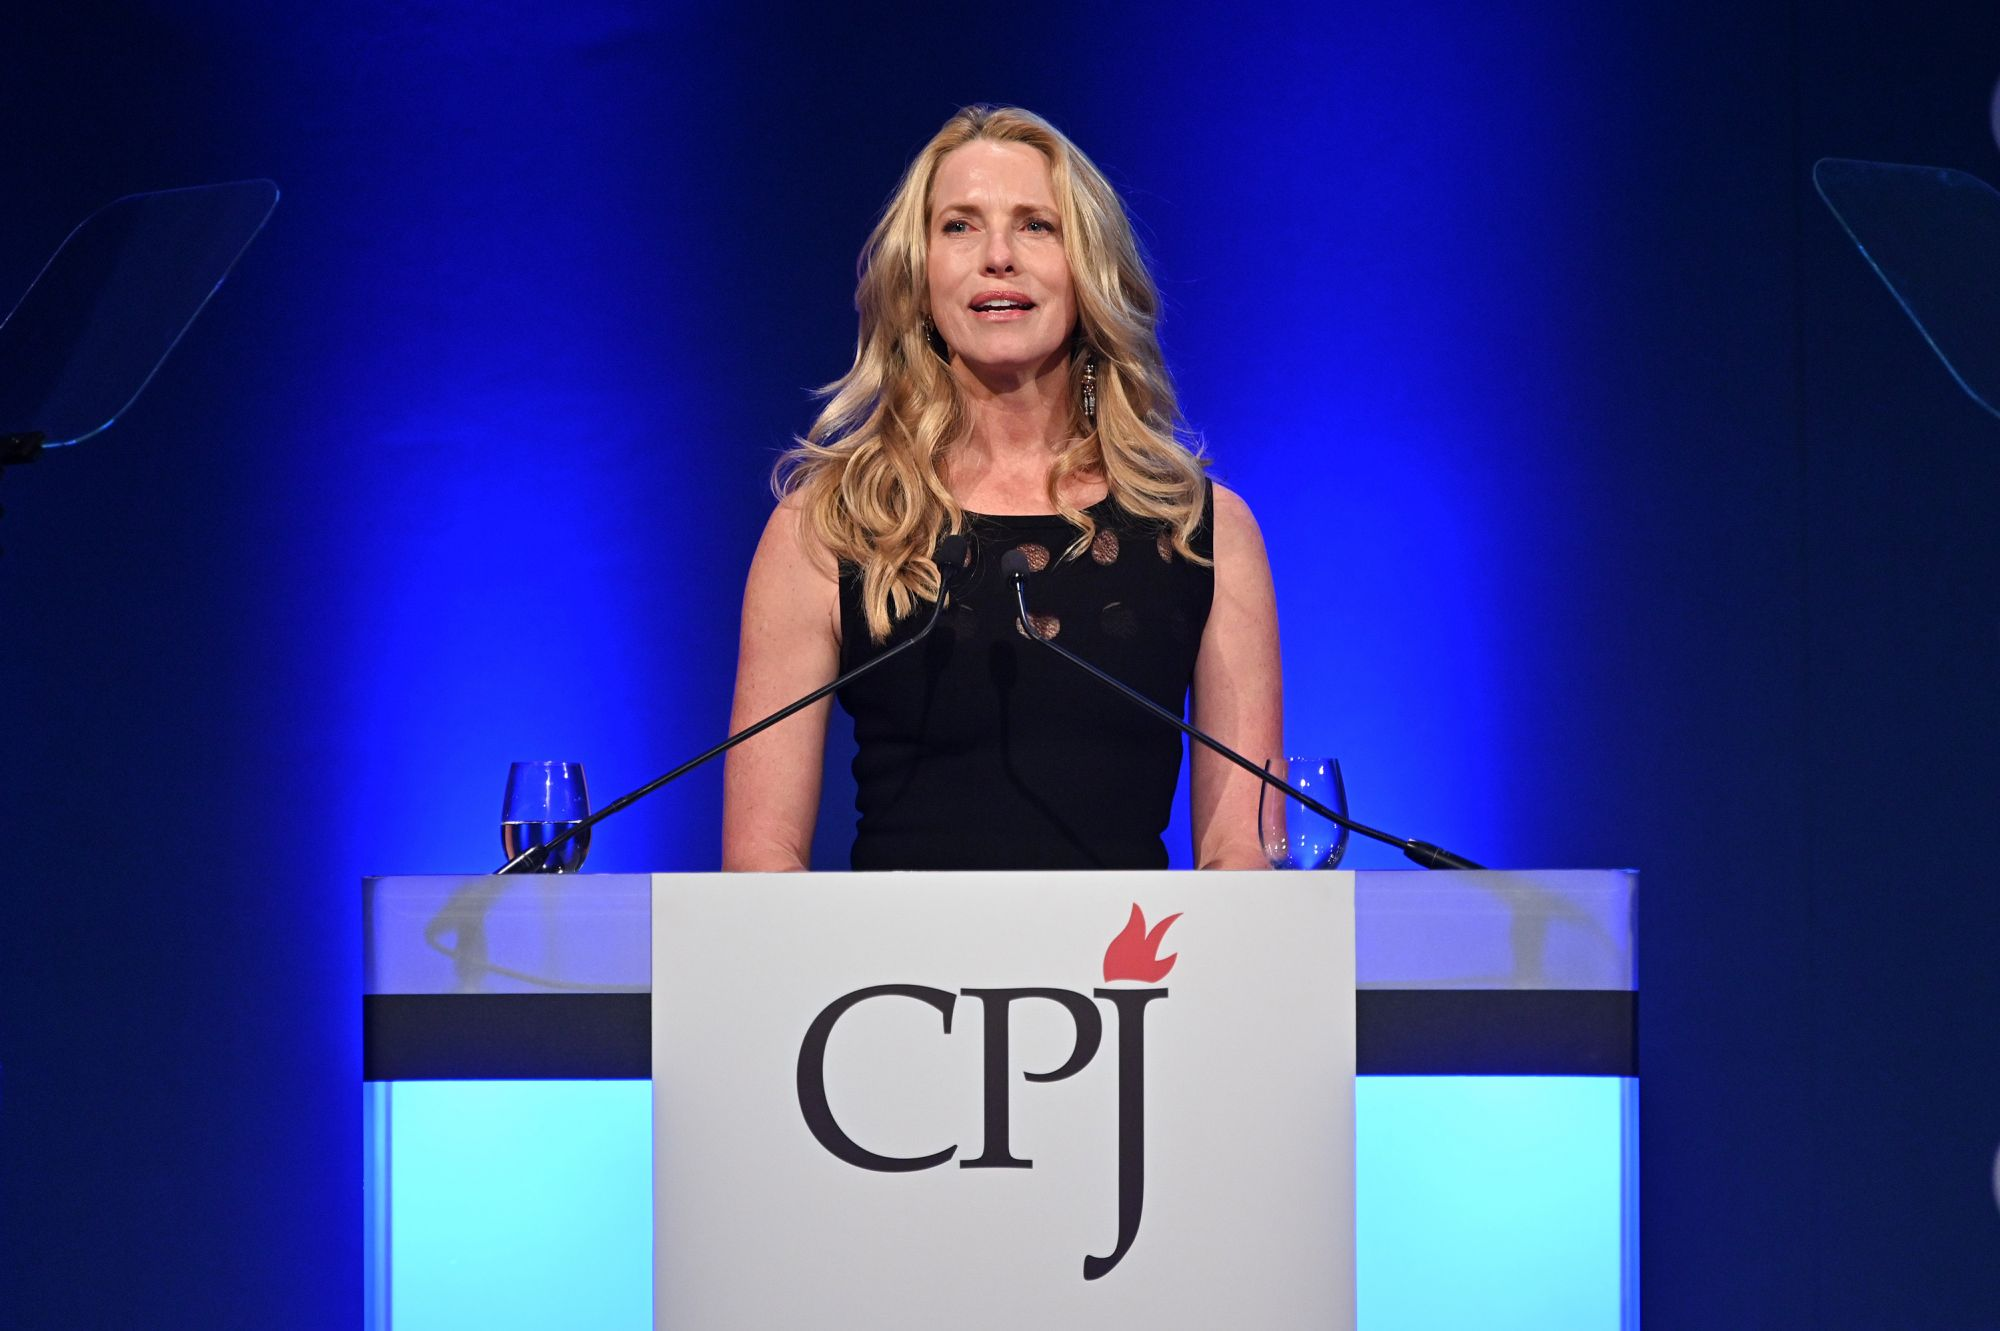 NEW YORK, NEW YORK - NOVEMBER 21: Laurene Powell Jobs speaks onstage at the Committee to Protect Journalists' 29th Annual International Press Freedom Awards on November 21, 2019 in New York City. (Photo by Dia Dipasupil/Getty Images)